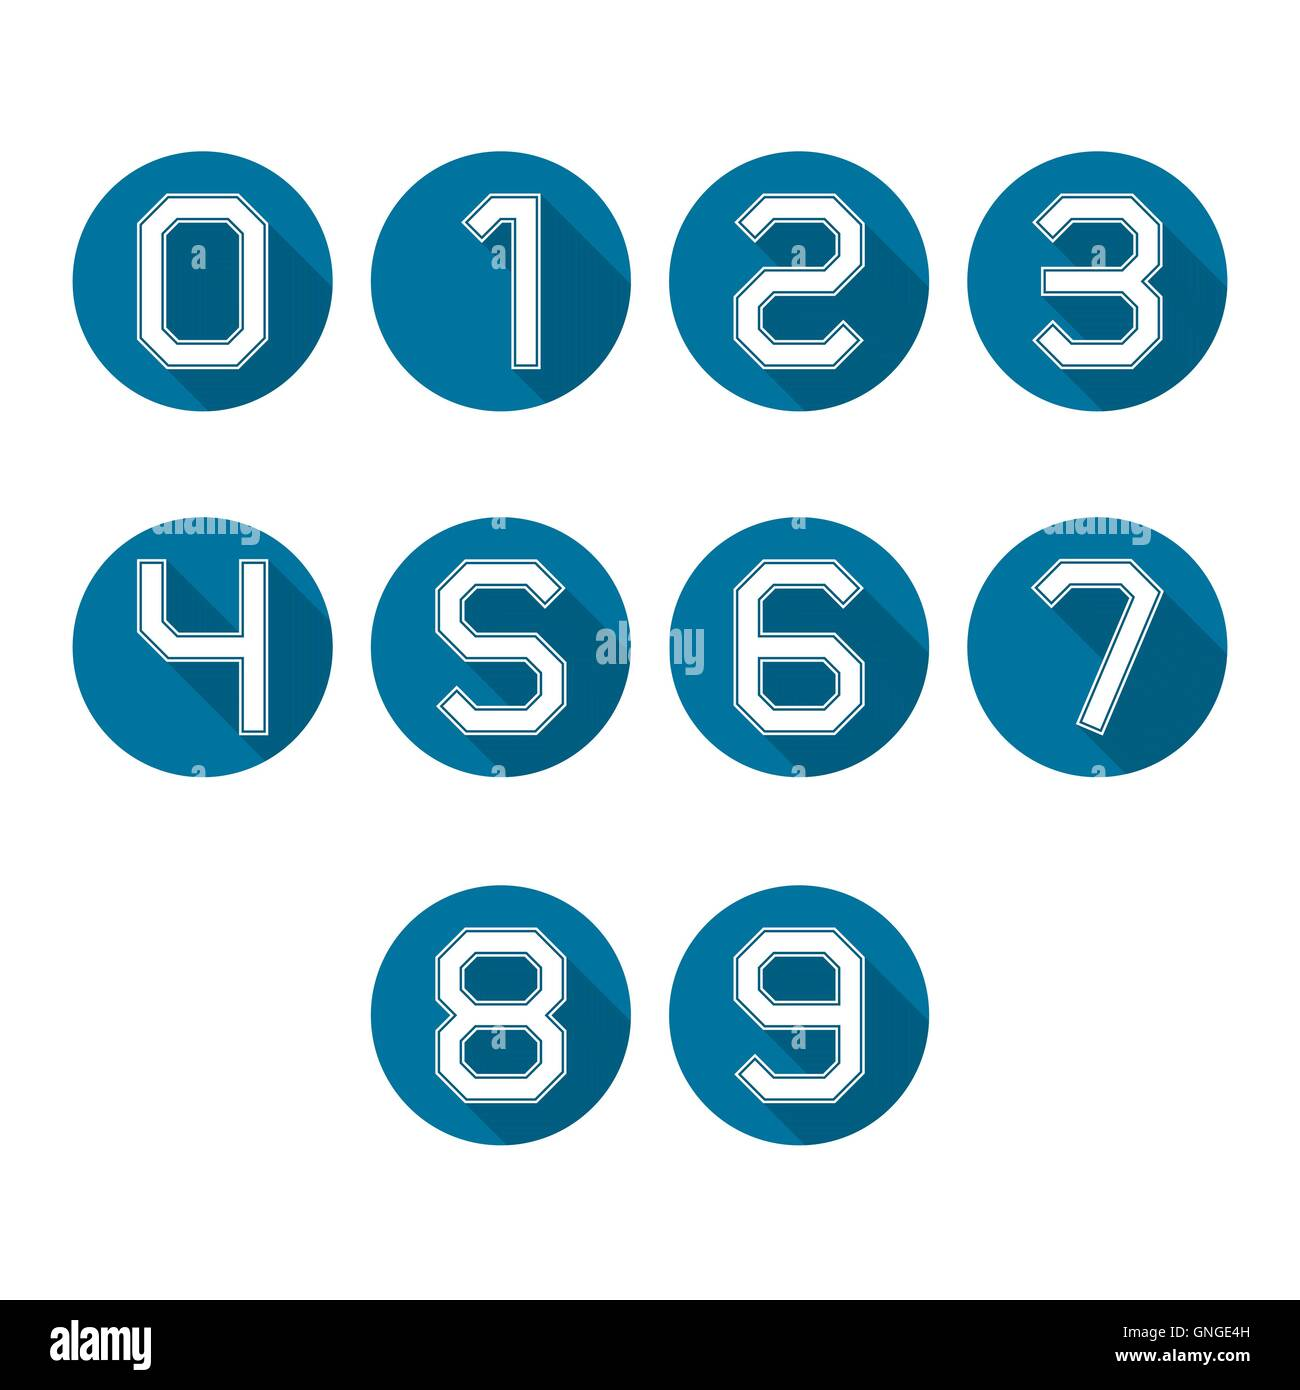 Icons numbers, vector illustration. - Stock Image